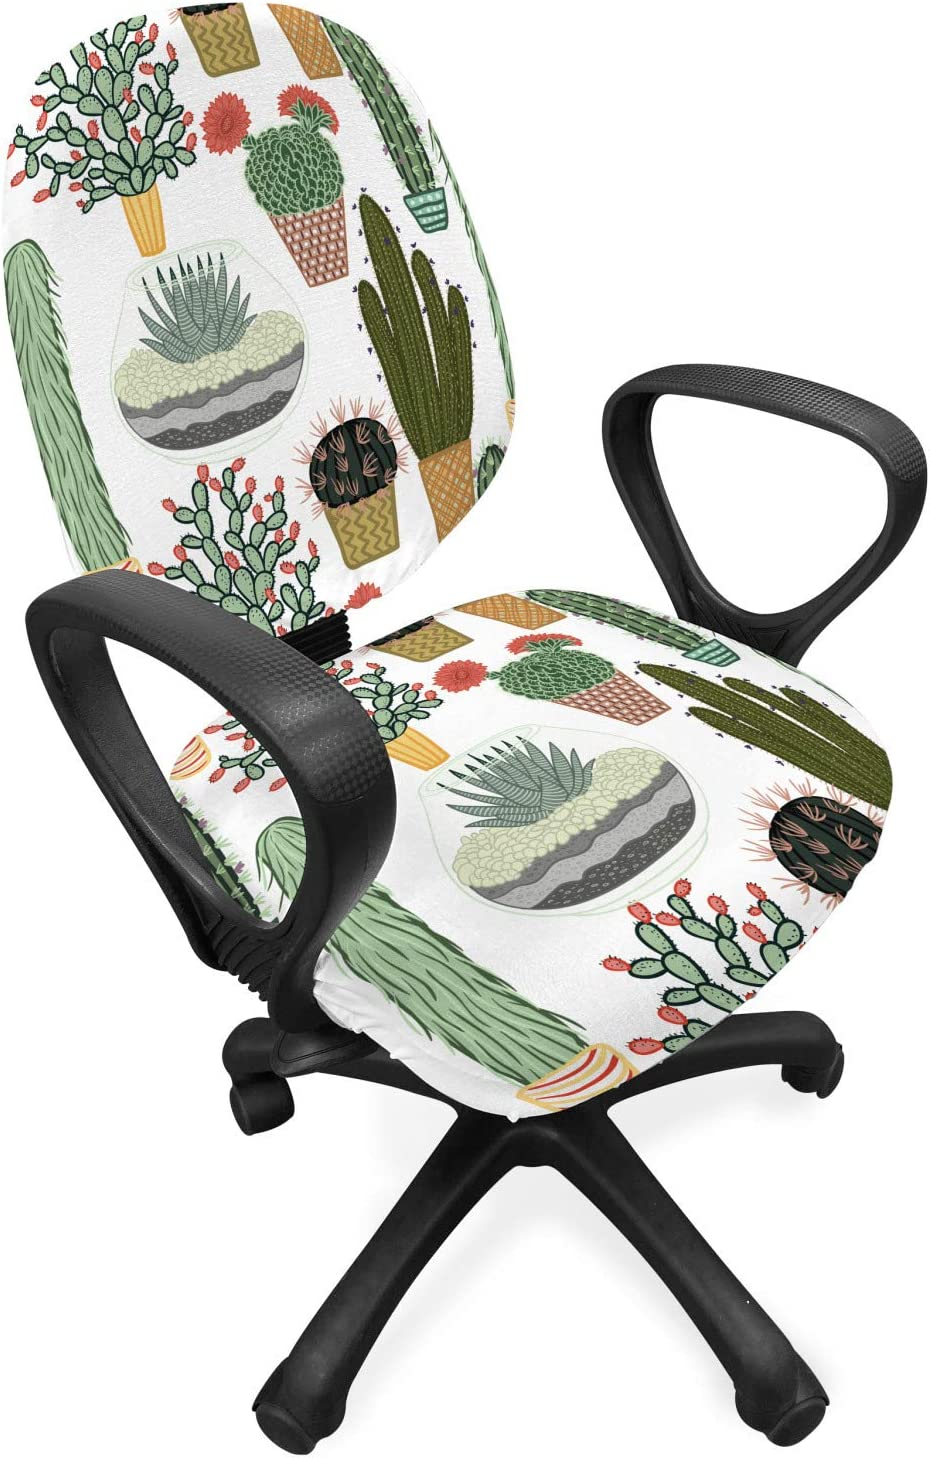 Ambesonne Cactus Office Chair Slipcover, Pattern with Succulent Plants and Cactuses in Pots Botanical Floral Mexican Garden, Protective Stretch Decorative Fabric Cover, Standard Size, Green